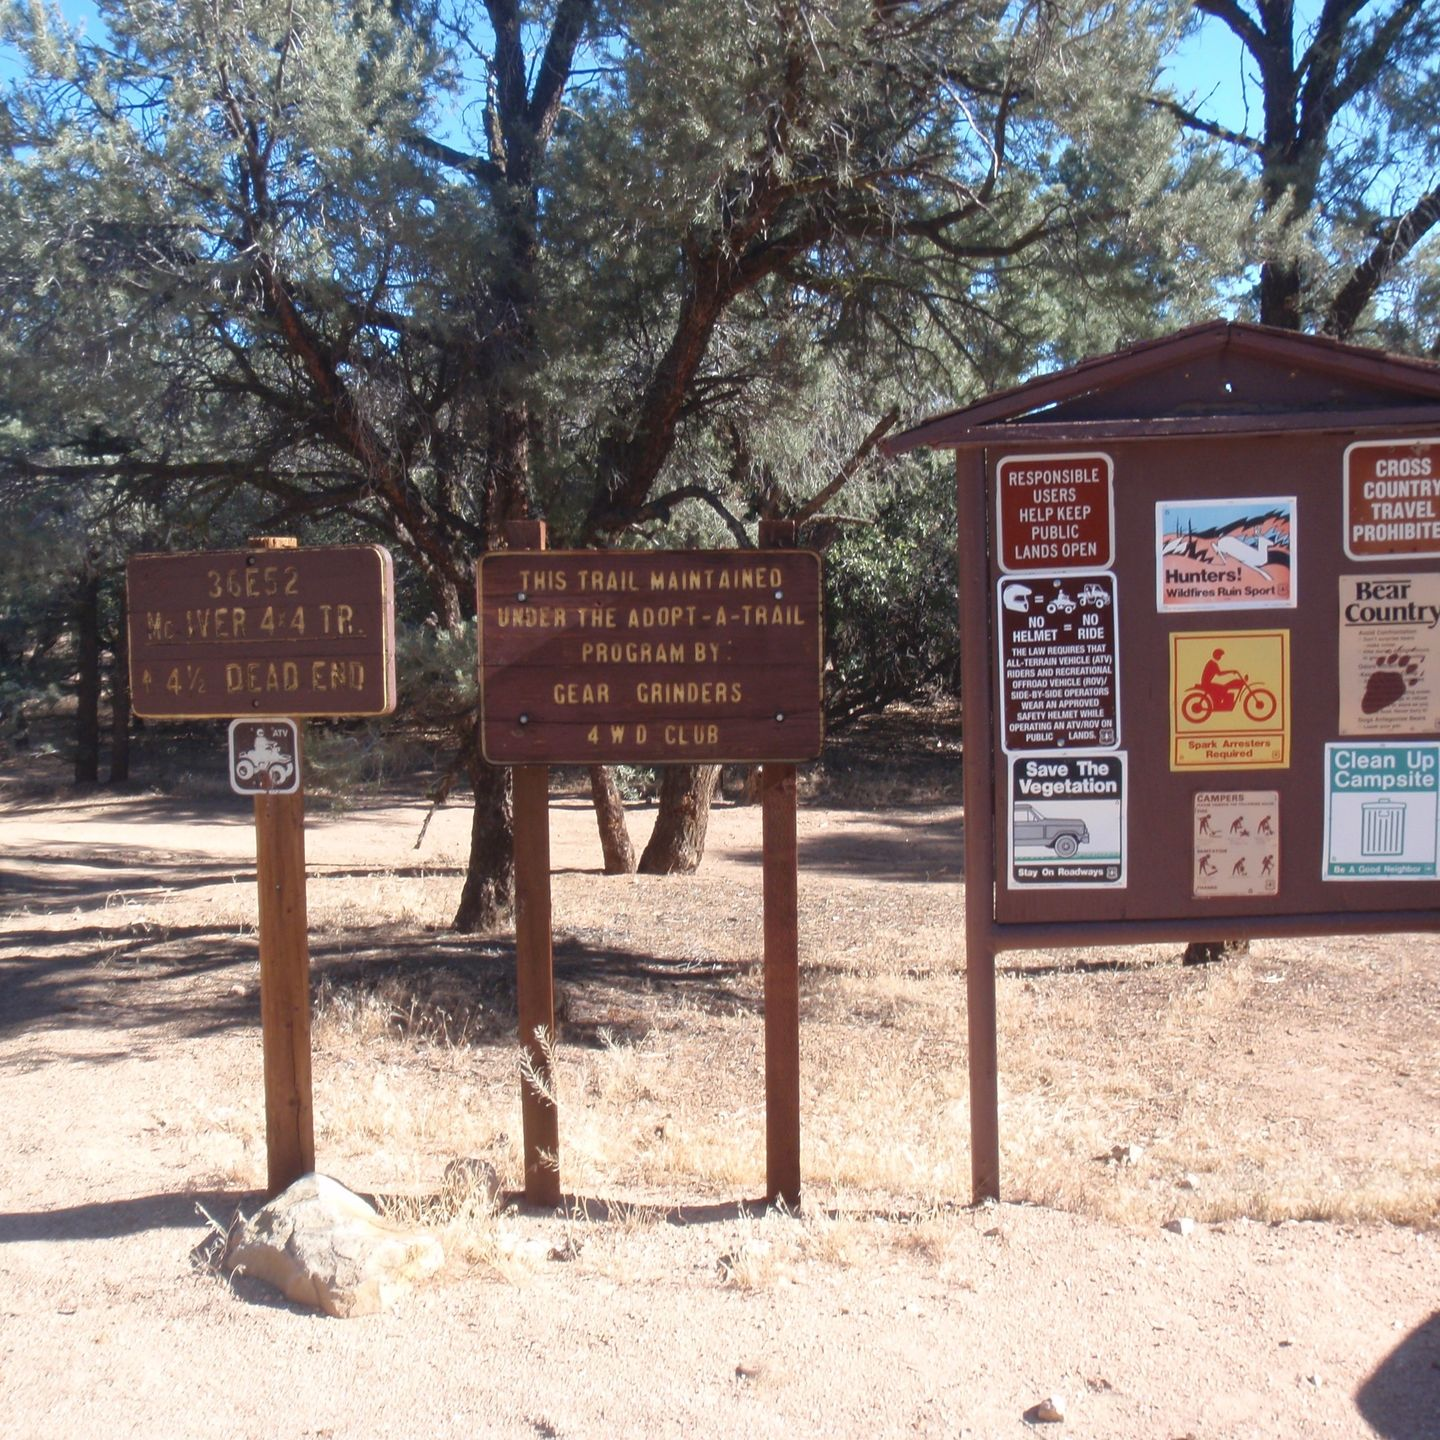 SC65 - McIvers Cabin - Waypoint 12: Intersection with 36E52